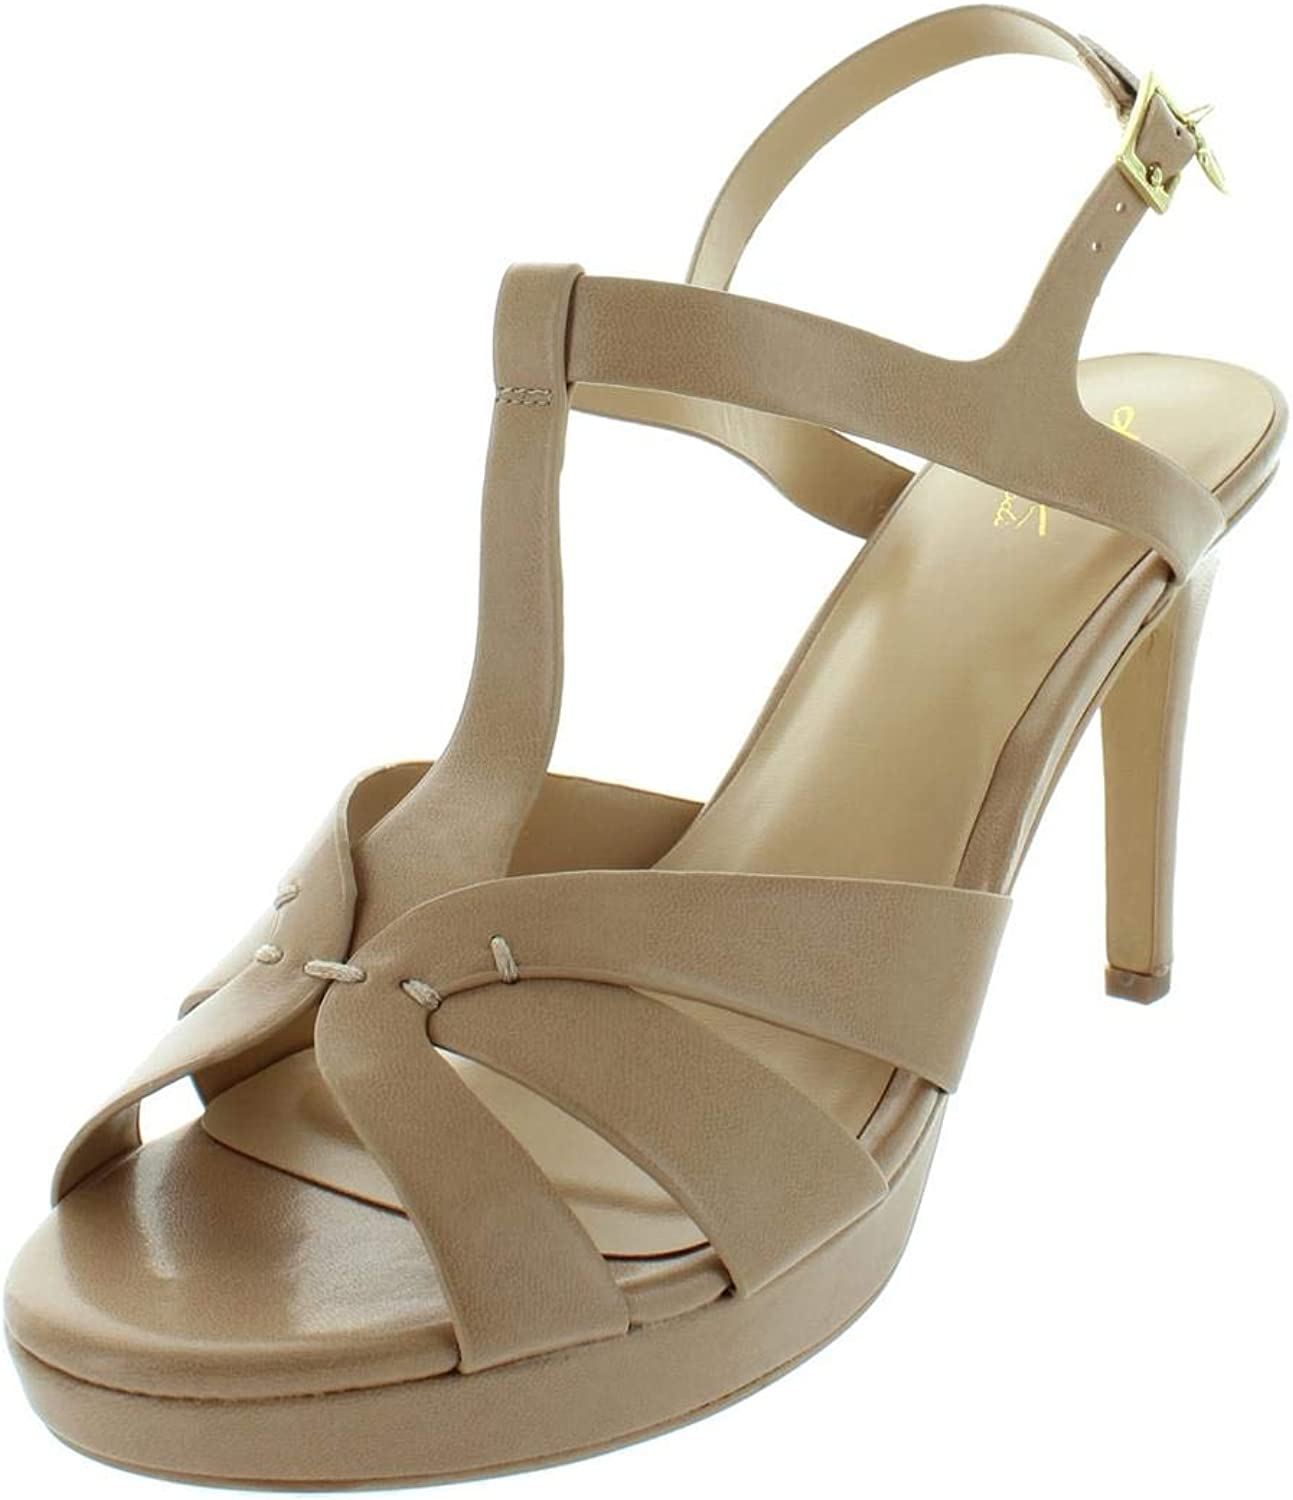 Thalia Sodi Womens Verrda Faux Leather Heels Platform Sandals